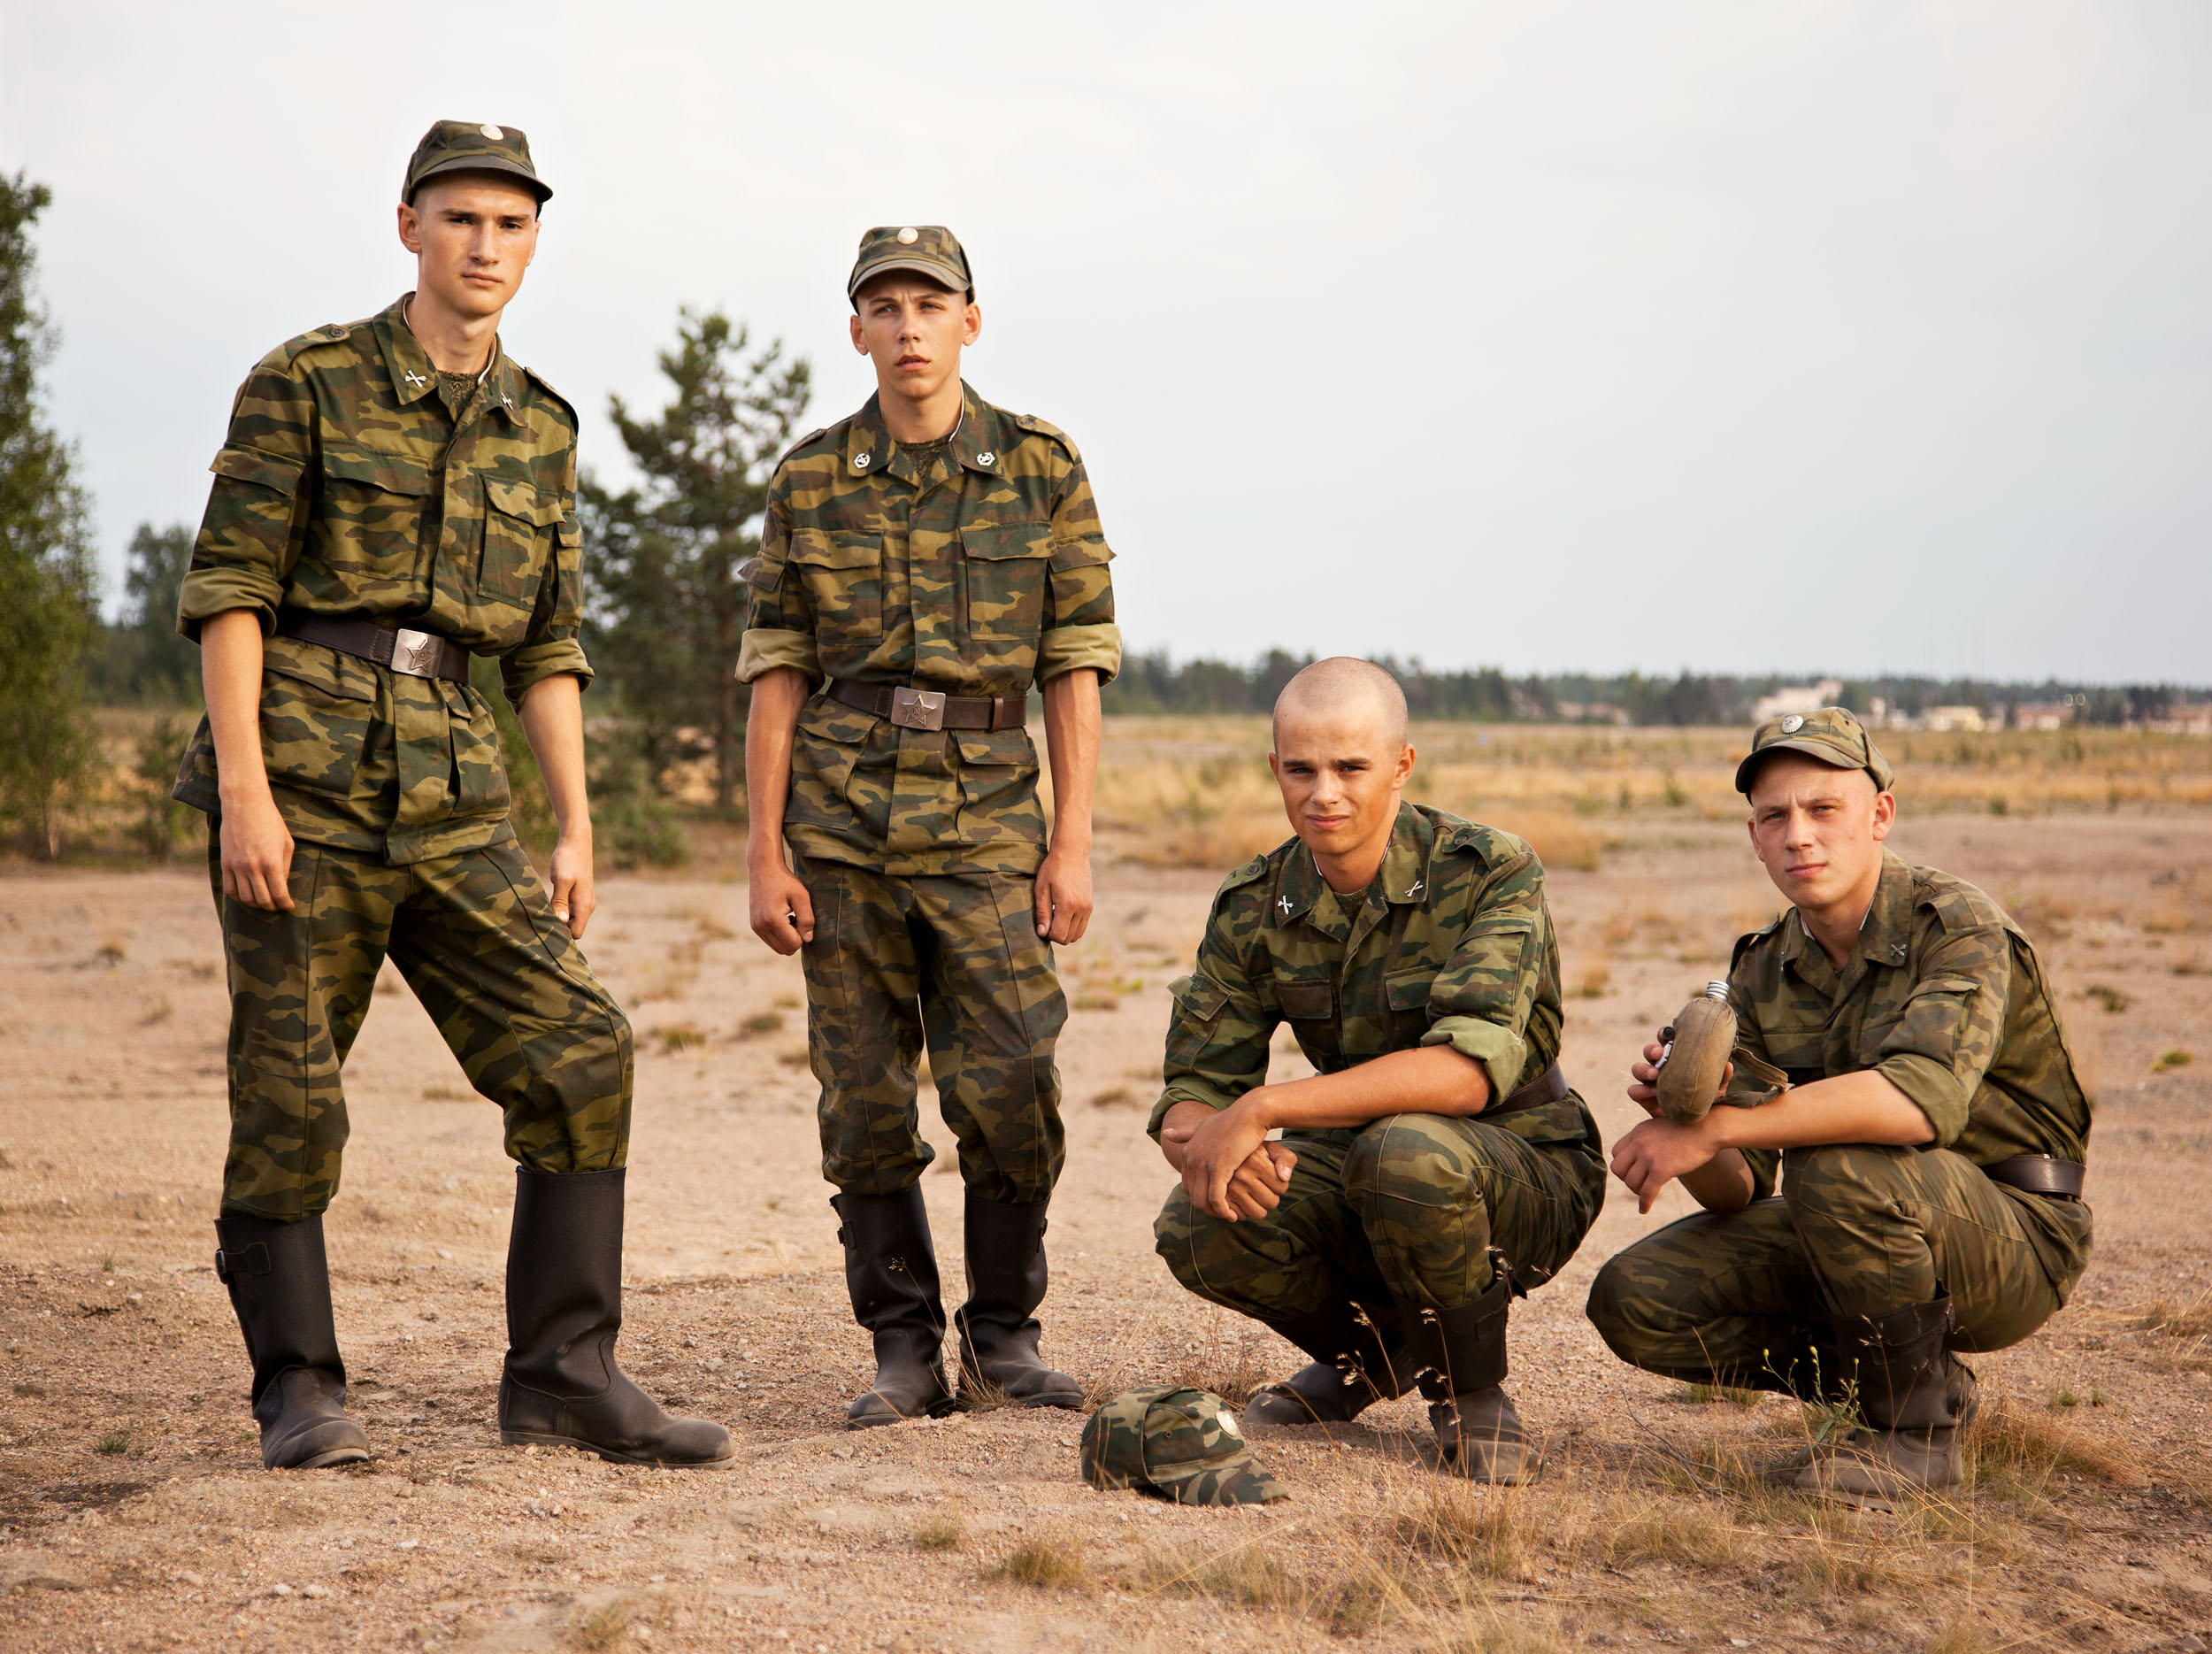 Young Soldiers at Training Ground  2011, archival pigment print 100 x 134 cm / 39.5 x 53 in. Edition of 5